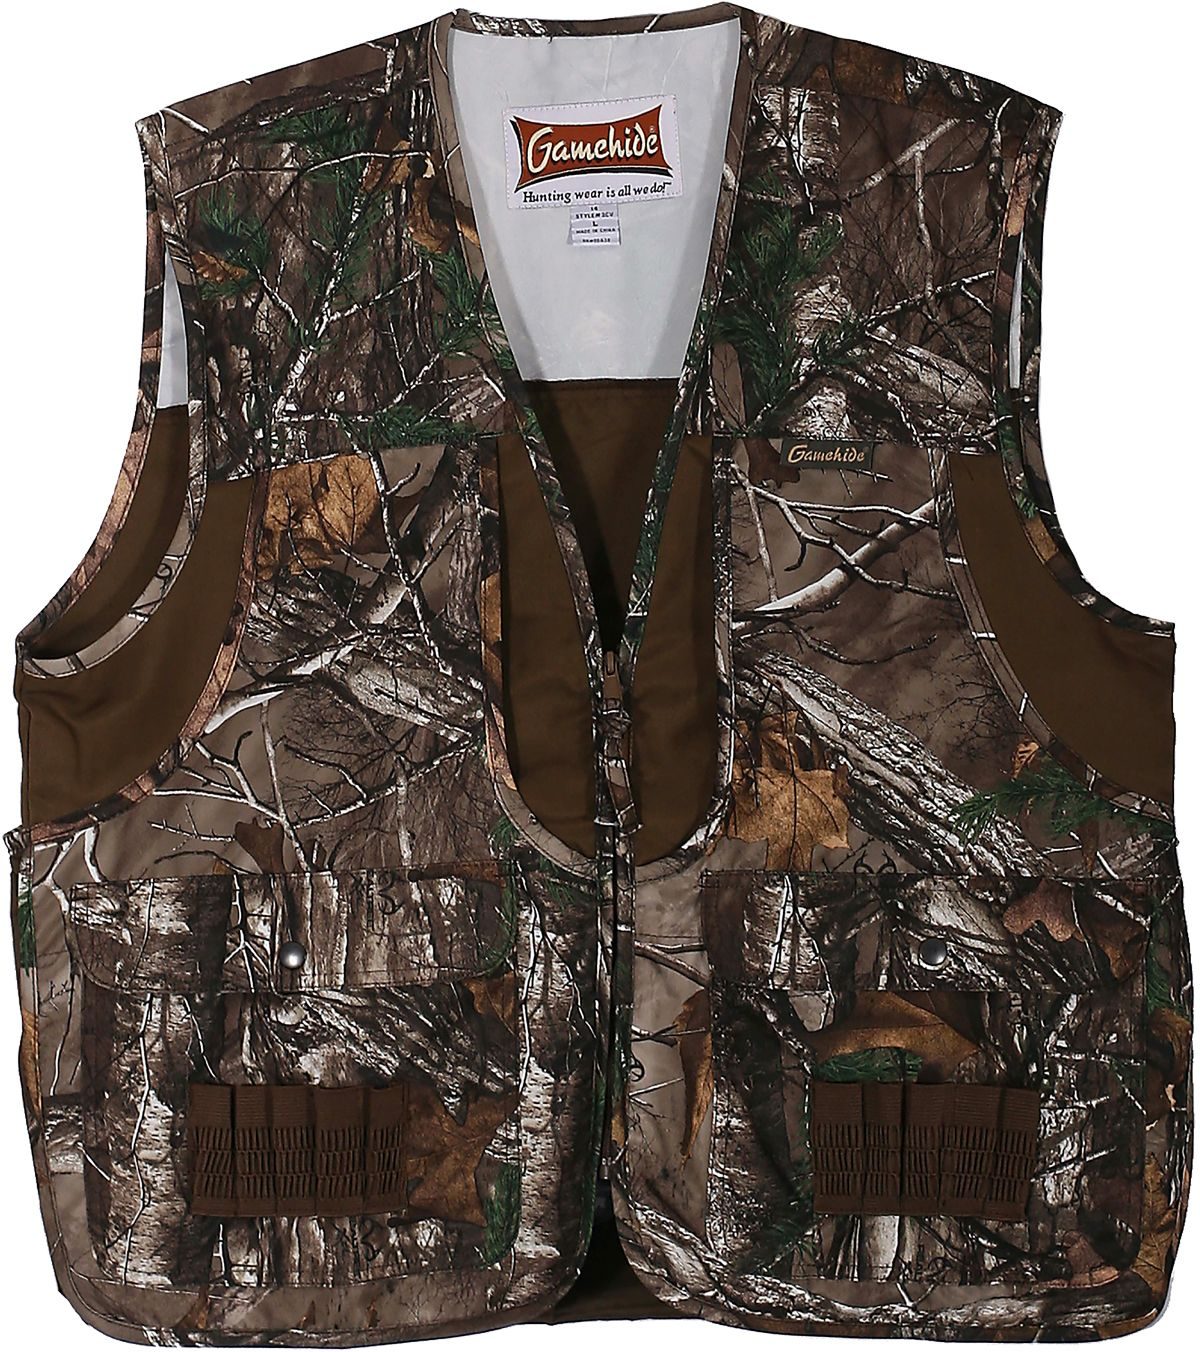 Gamehide Youth Front Loader Hunting Vest, Kids Unisex, Size: Small, Brown thumbnail